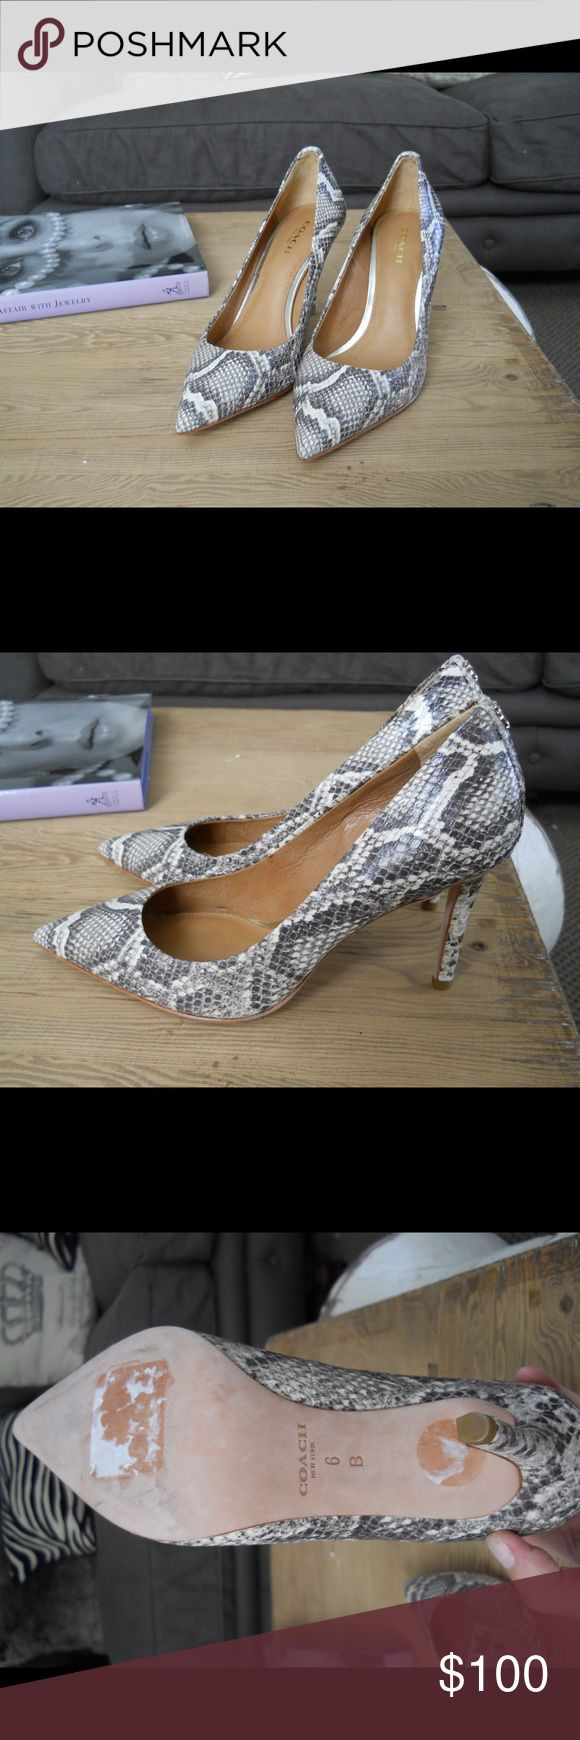 """New Coach """"Teddie"""" Snake Print Leather Pumps, 6M! Brand New (NO Box or Tag) Coach """"Teddie"""" Snake-Printed Leather Pumps, Size 6M, Bold Pattern, Leather Lining and Sole, 3 1/2"""" Heel, Has Been Sitting in My Closet, Will carefully Wrap with Bubble Wrap for Shipping Coach Shoes Heels"""